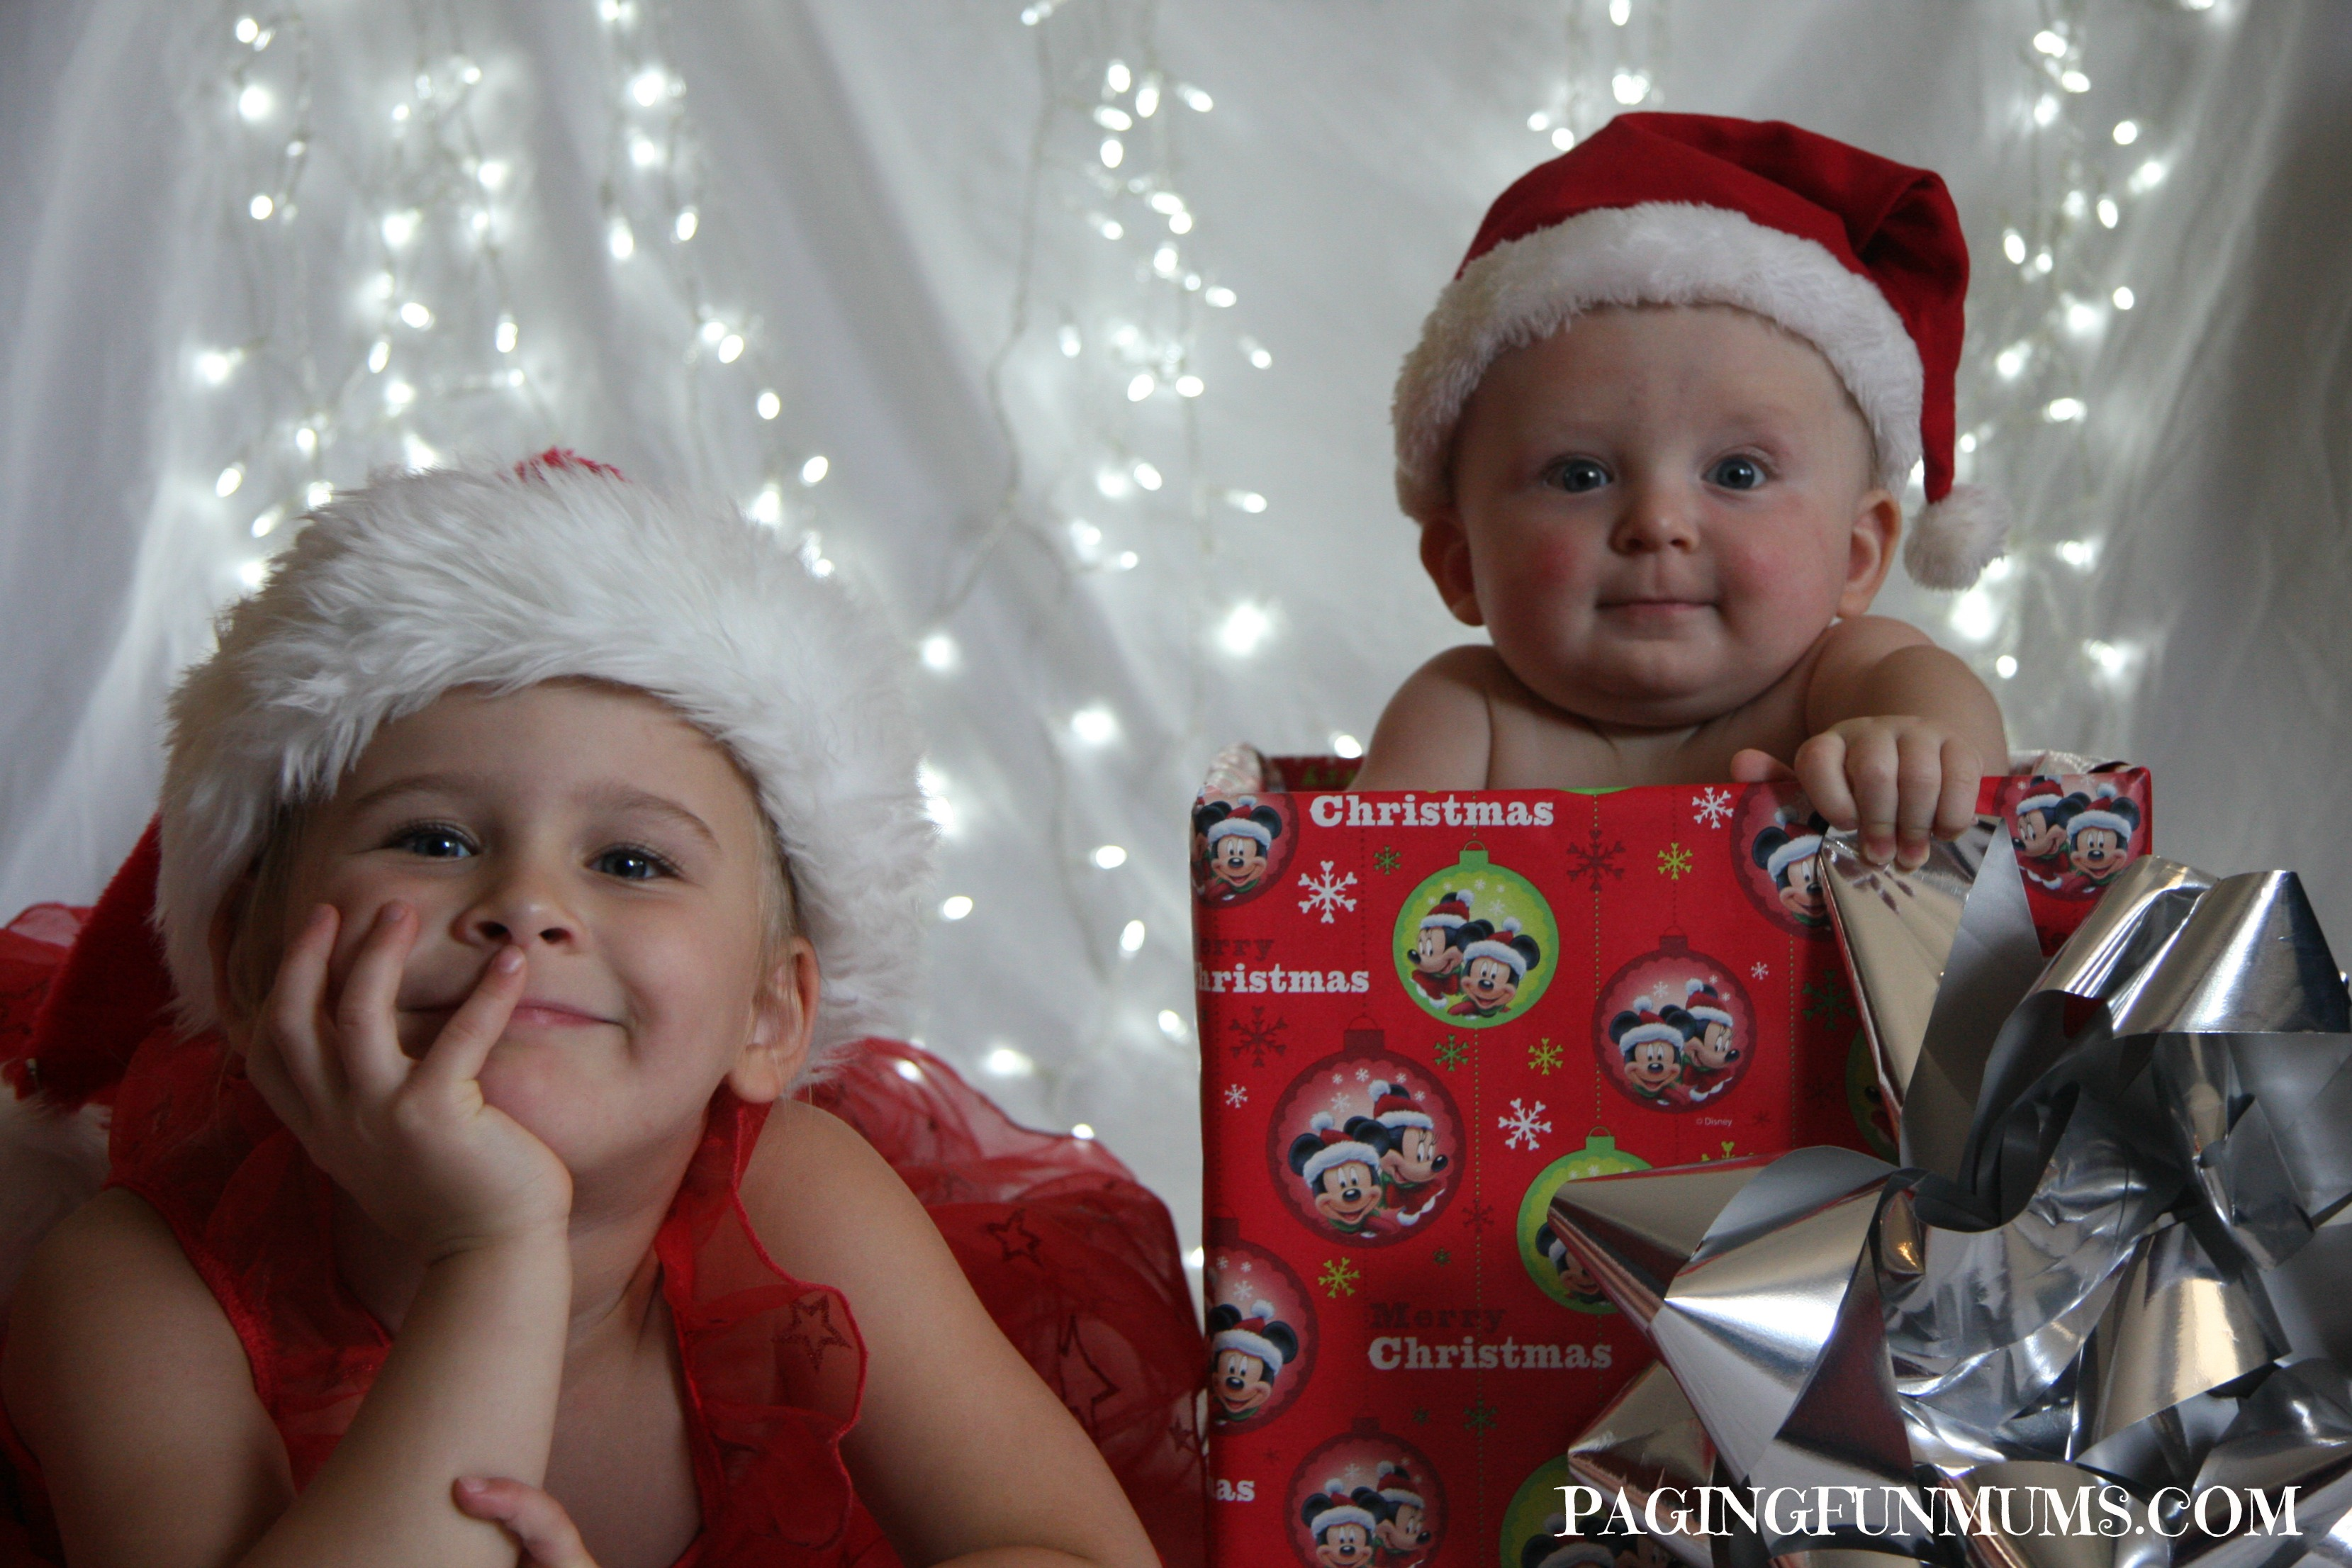 Fun Christmas Photos with Kids